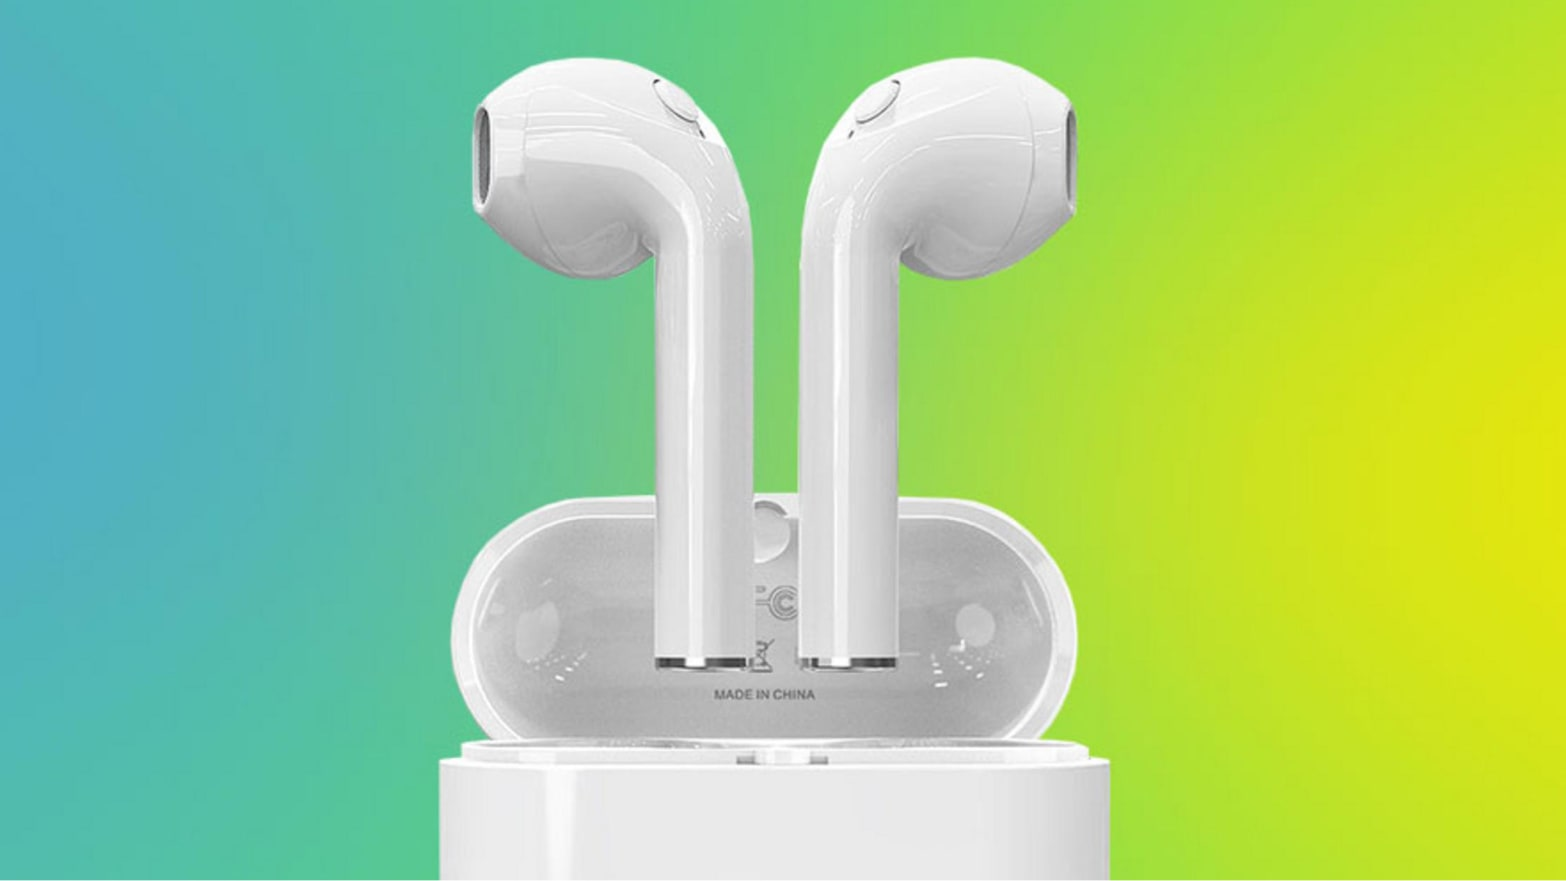 bffe3341fae These Wireless Earbuds Are Just Like Apple AirPods – Minus The Price Tag